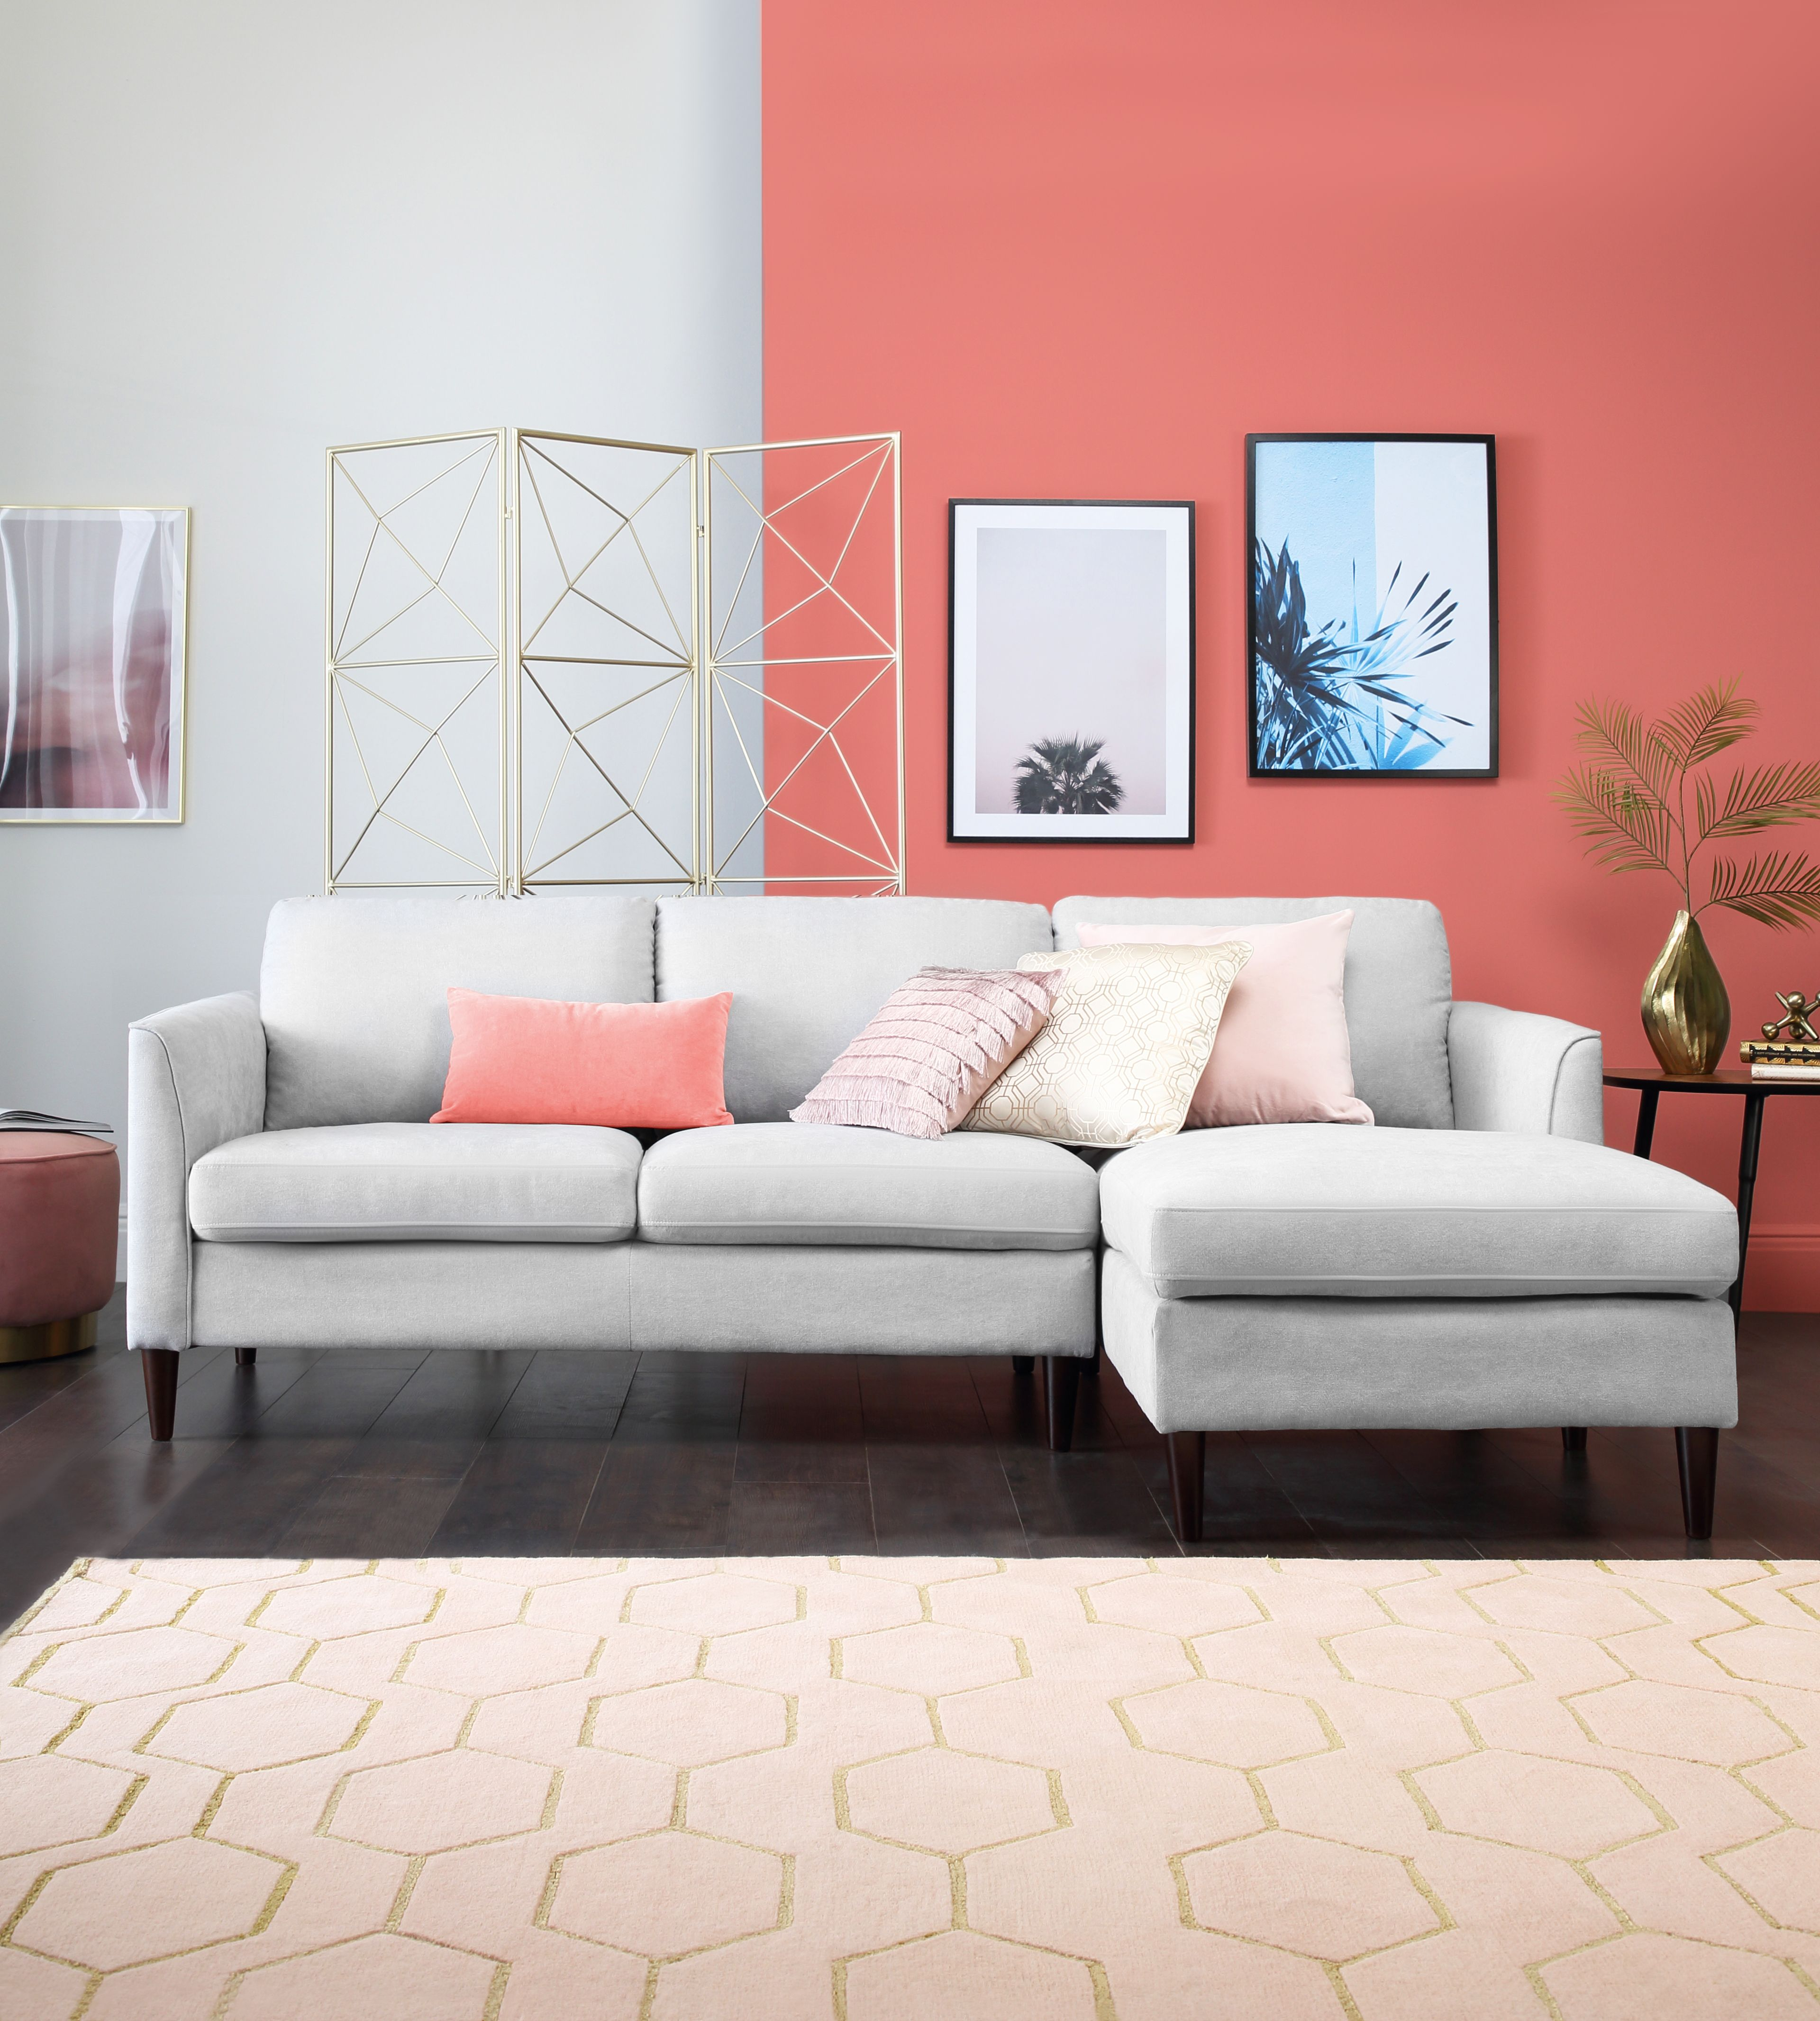 Revendeur Farrow And Ball Bordeaux la couleur corail, star de la déco en 2019 | décoration